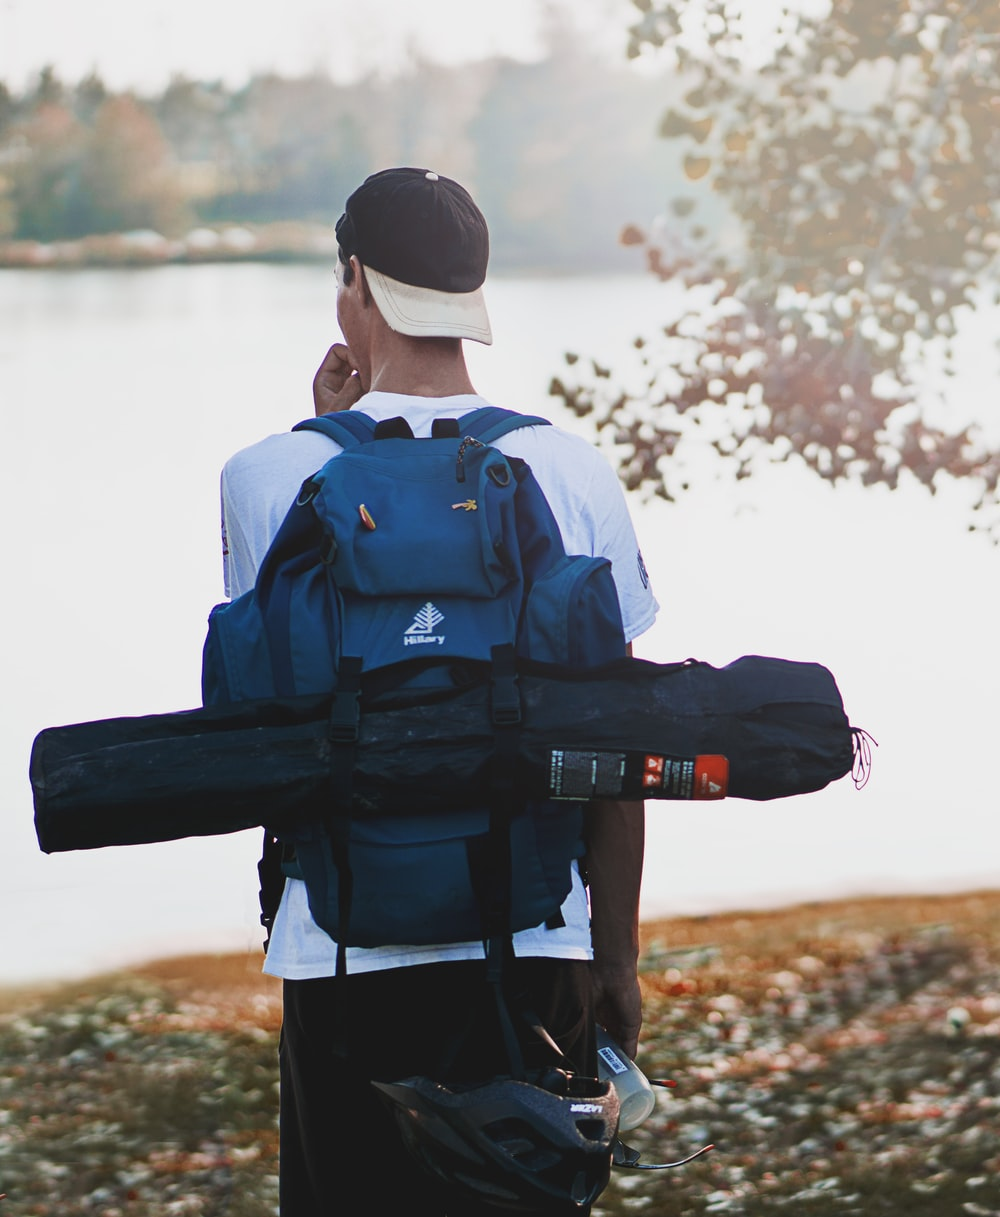 man wearing hiking backpack and tent bag standing near calm body of water